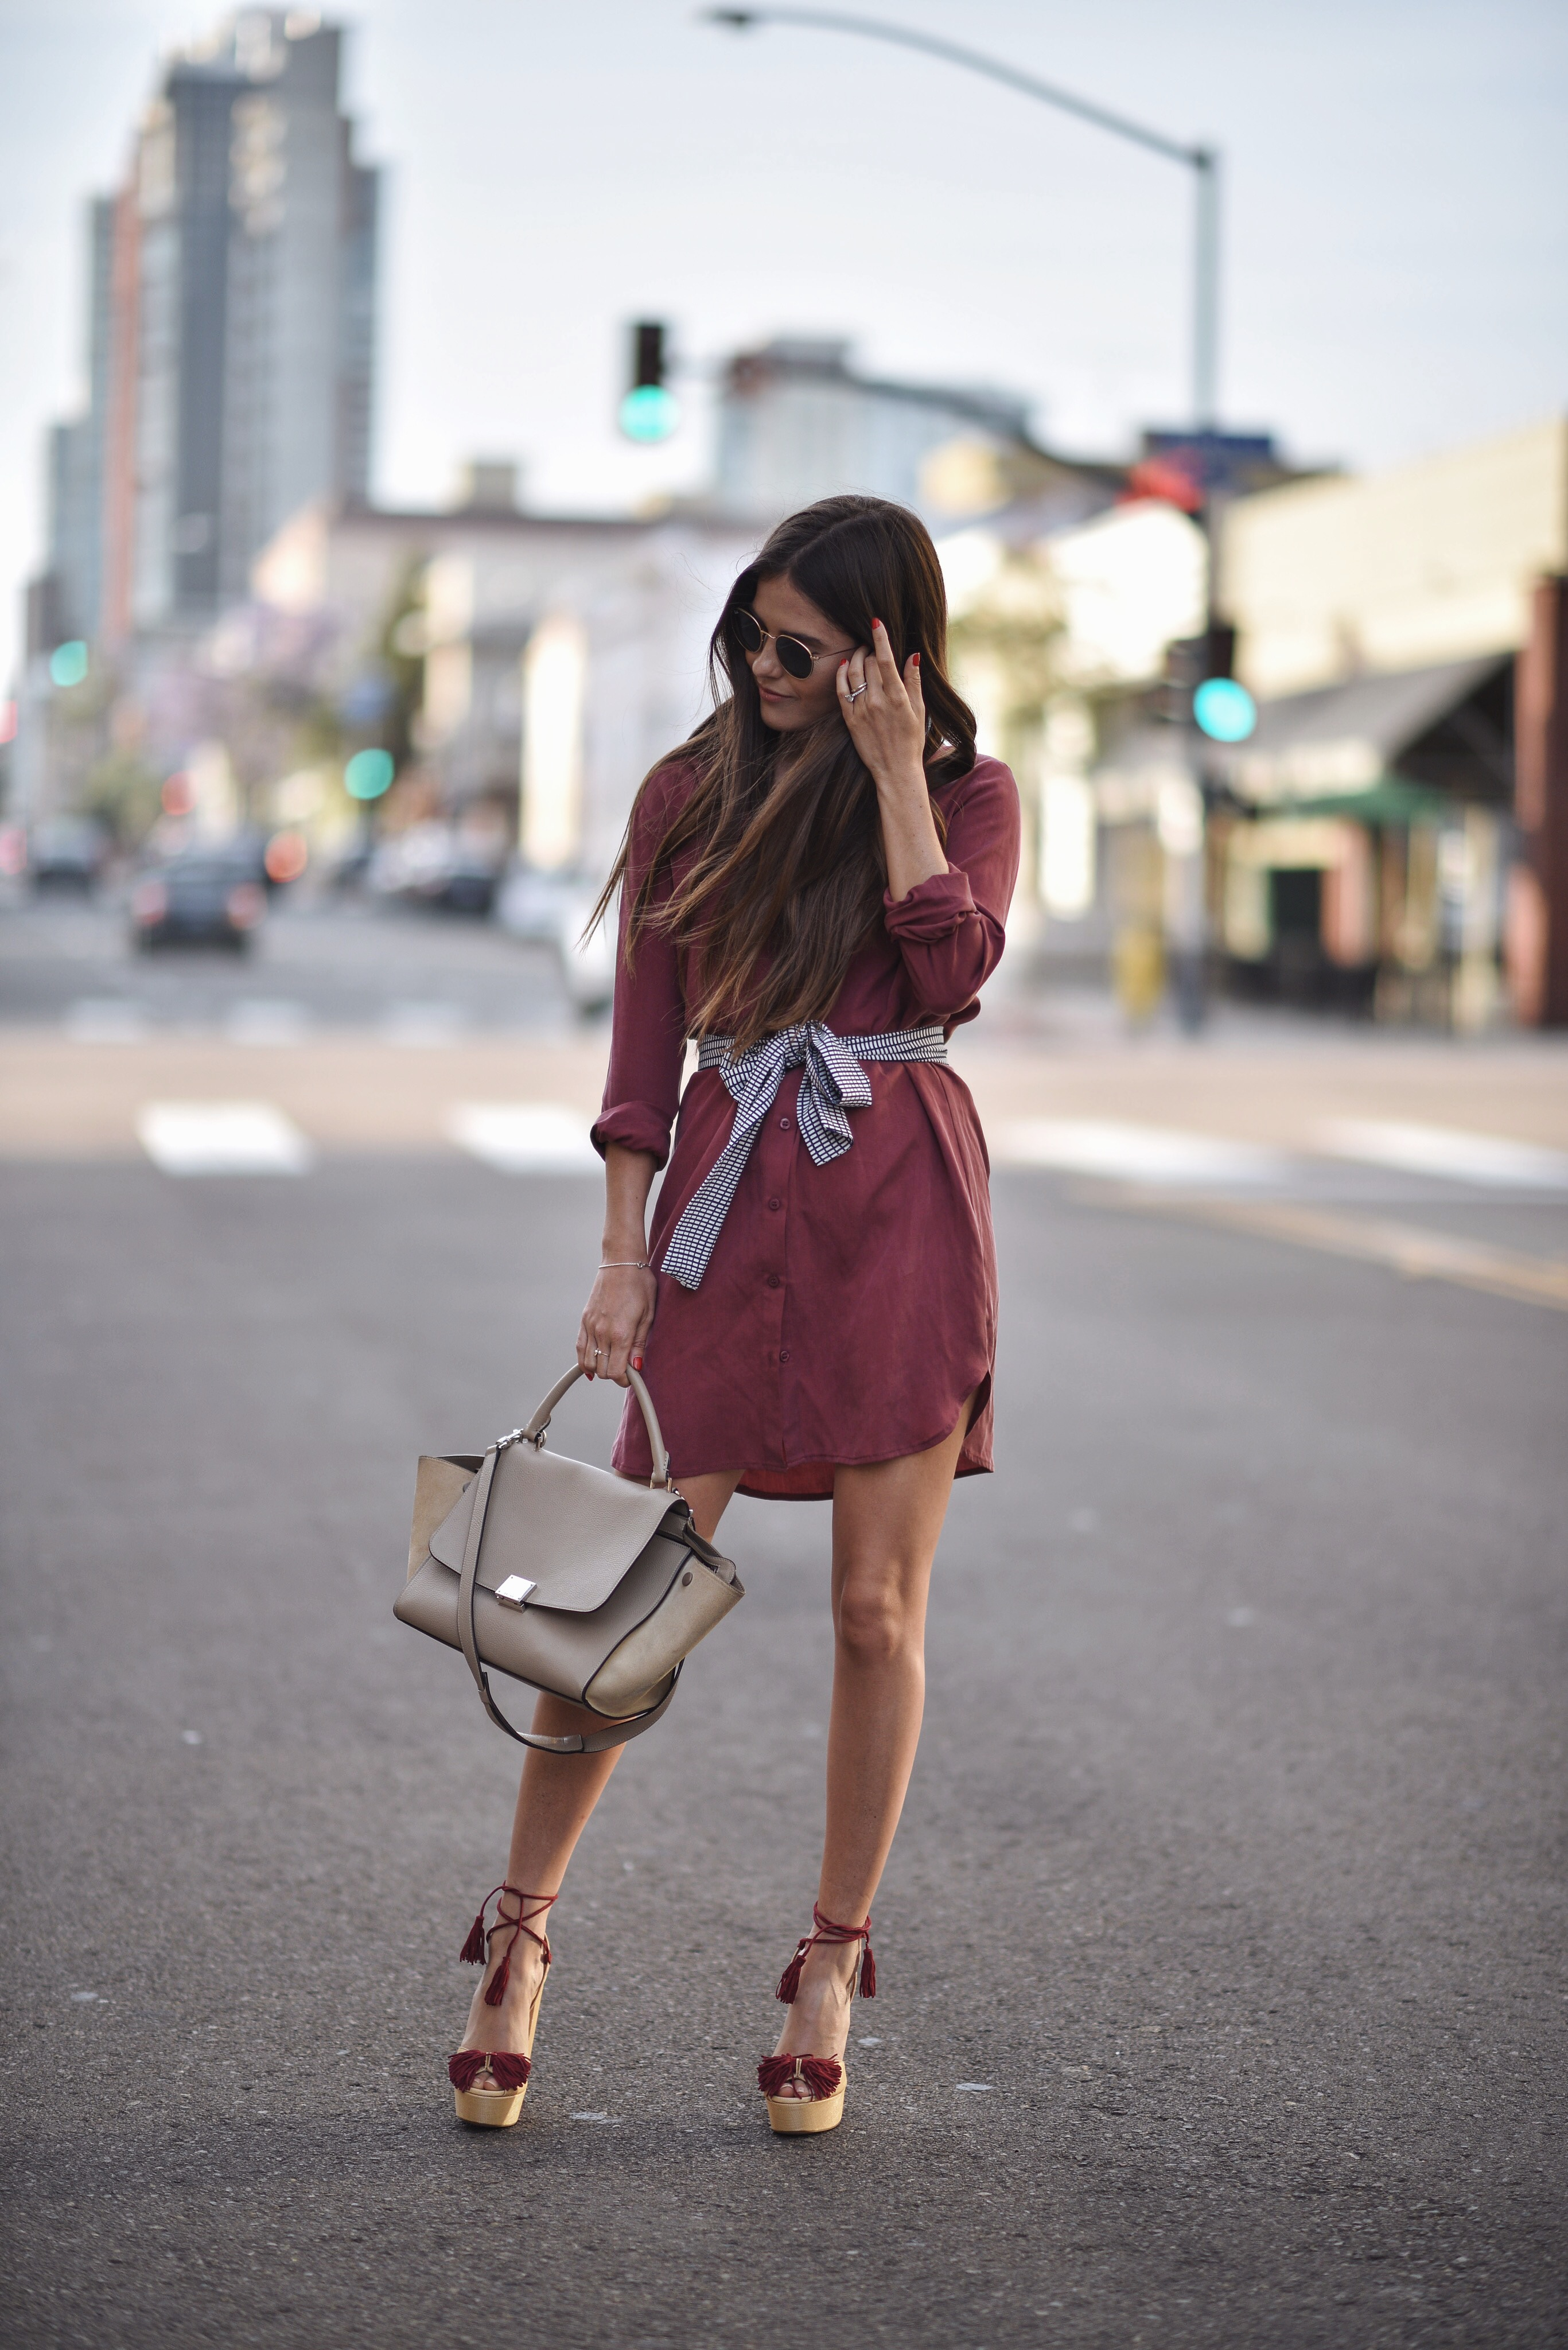 a70571779c7 25 Simple Ways To Wear A Shirt Dress - Outfits   Ideas - Just The Design